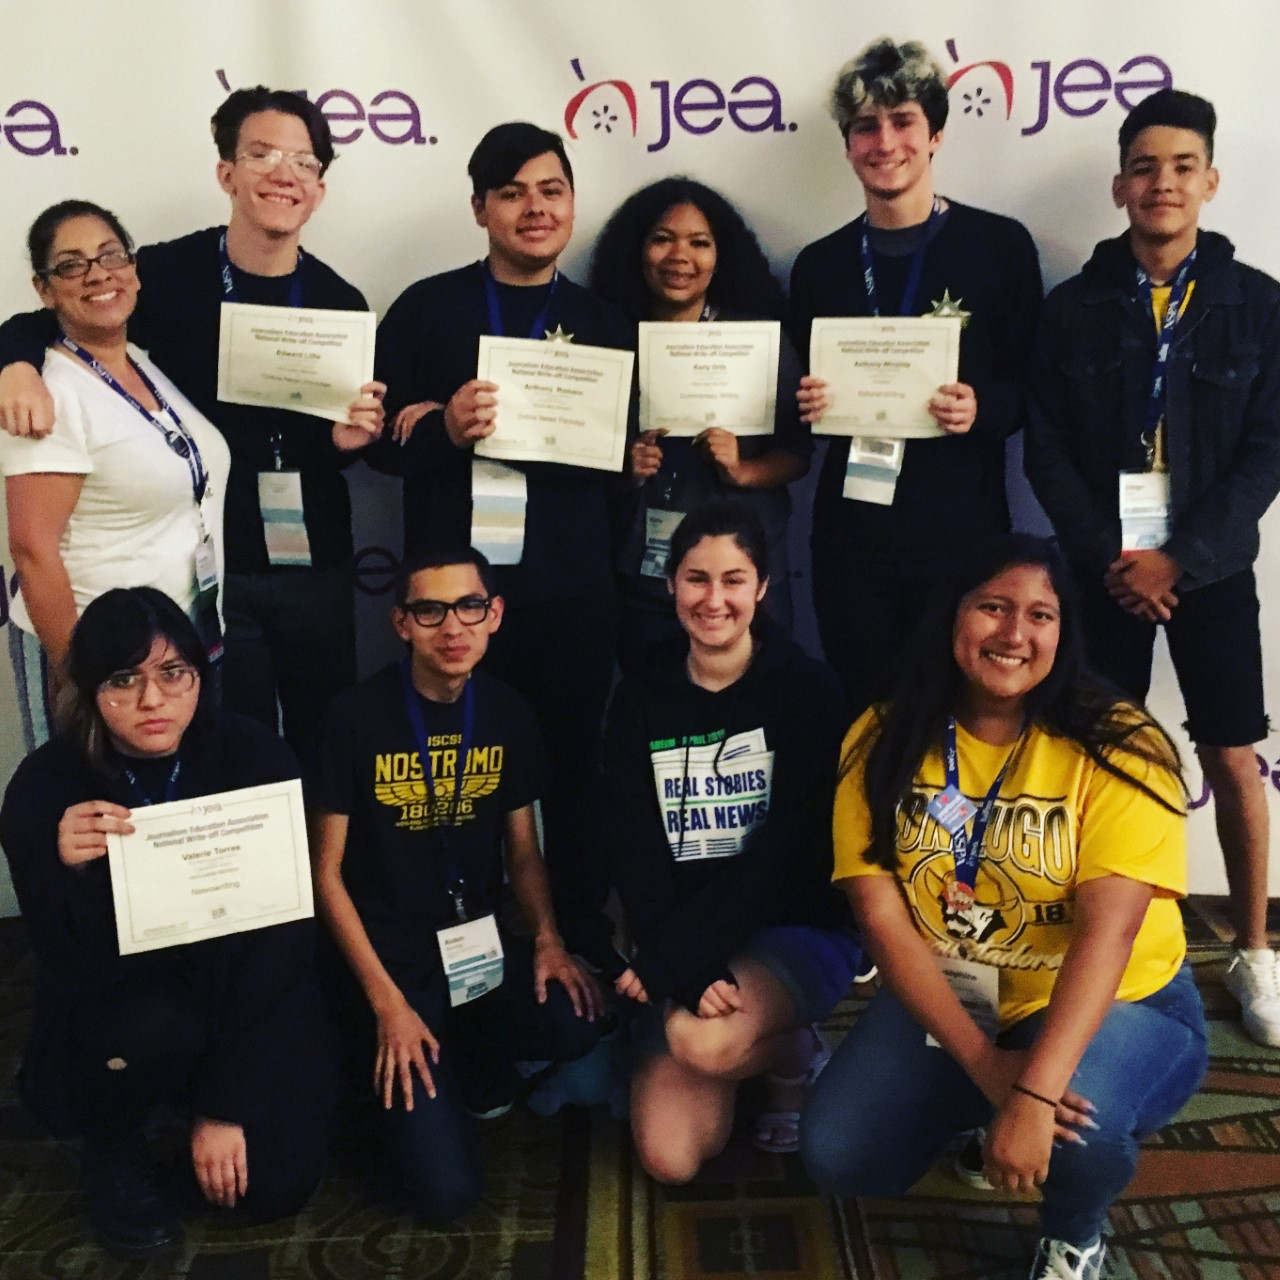 Celebrating their five National Journalism Write-Off Competition Awards are (top to bottom and left to right): Adviser, Annette Deming, CJE, Edward Lillie, Anthony Romero, Karly Ortiz, Anthony Winslow, Diego Cruz, Valerie Torres, Aiden Deming, Andreia Sales, and Josephine Ramos.